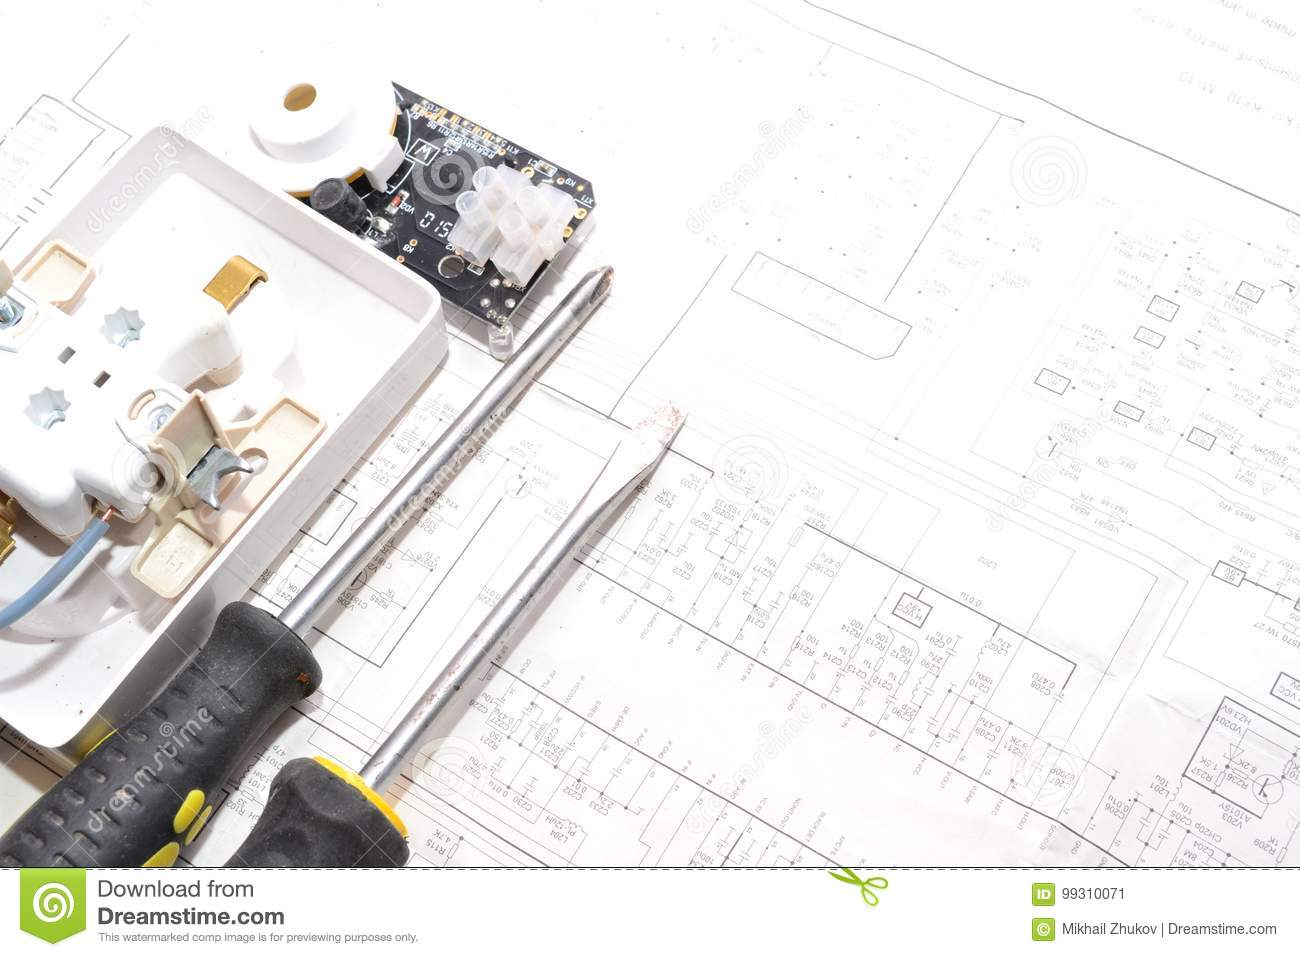 Electrical Wiring Projects Diagram Symbols Kawasaki Apartment Project Of The Stock Image On